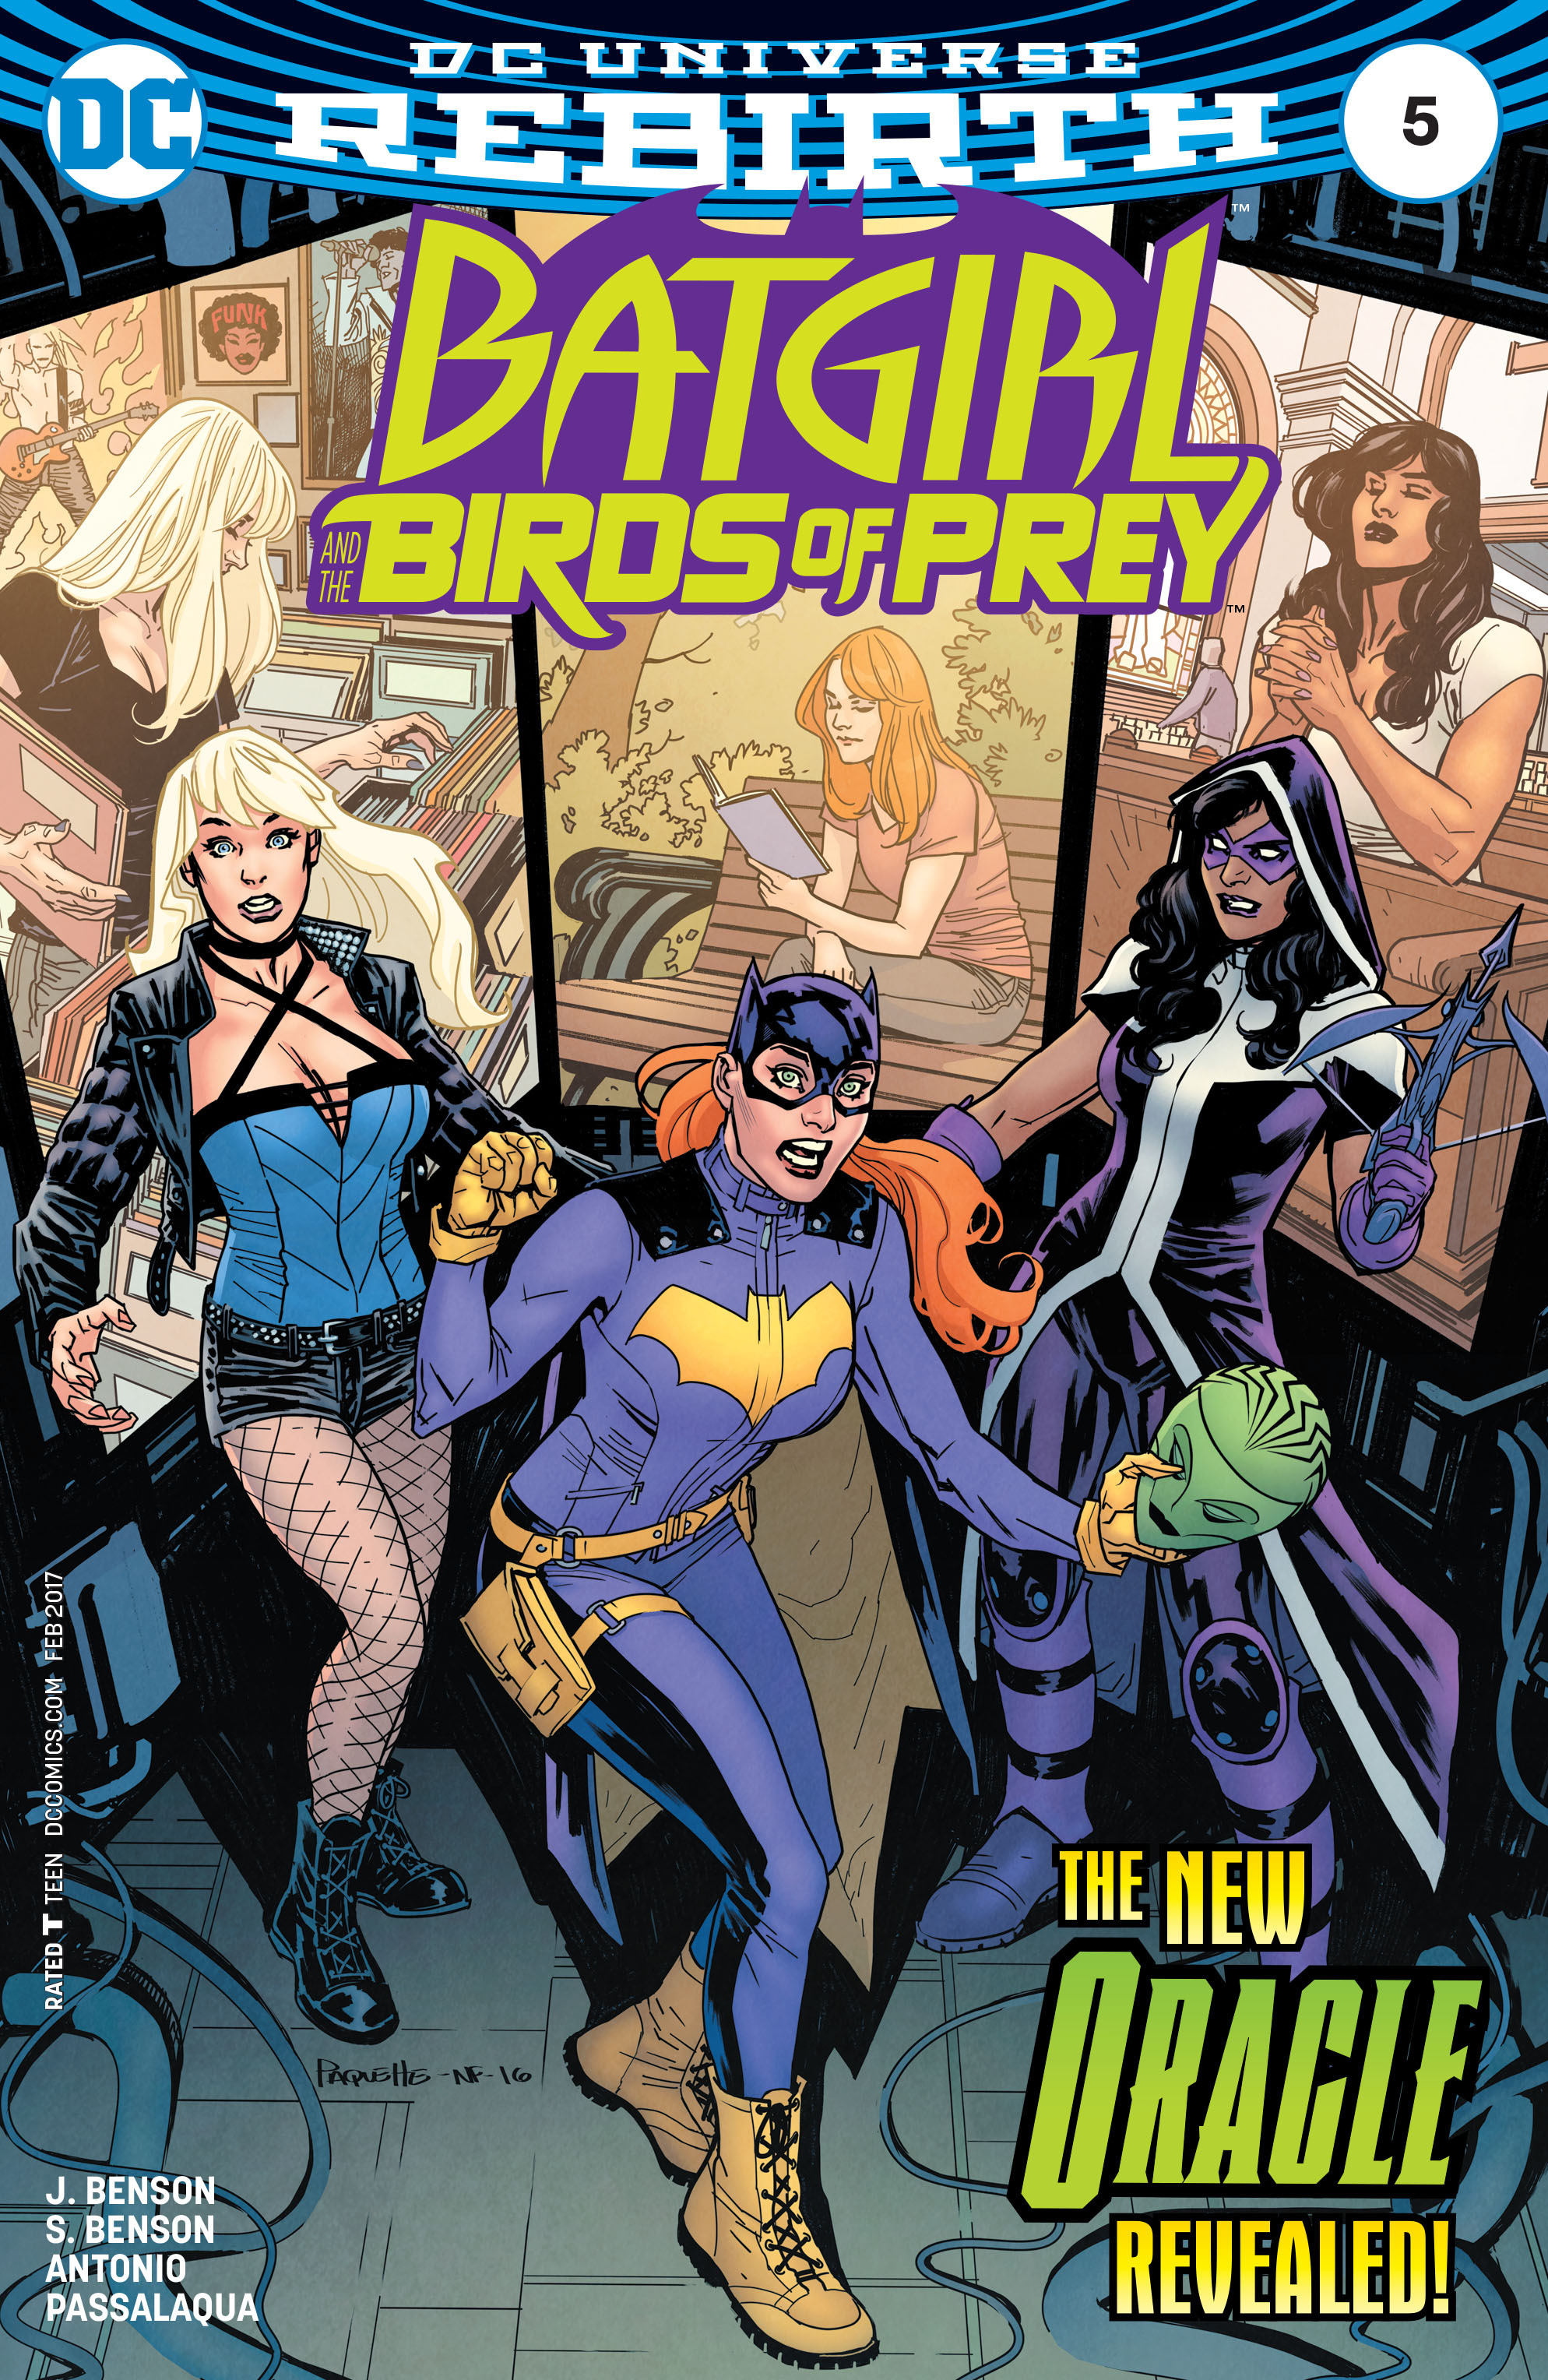 Comic Batgirl And The Birds Of Prey Issue 5